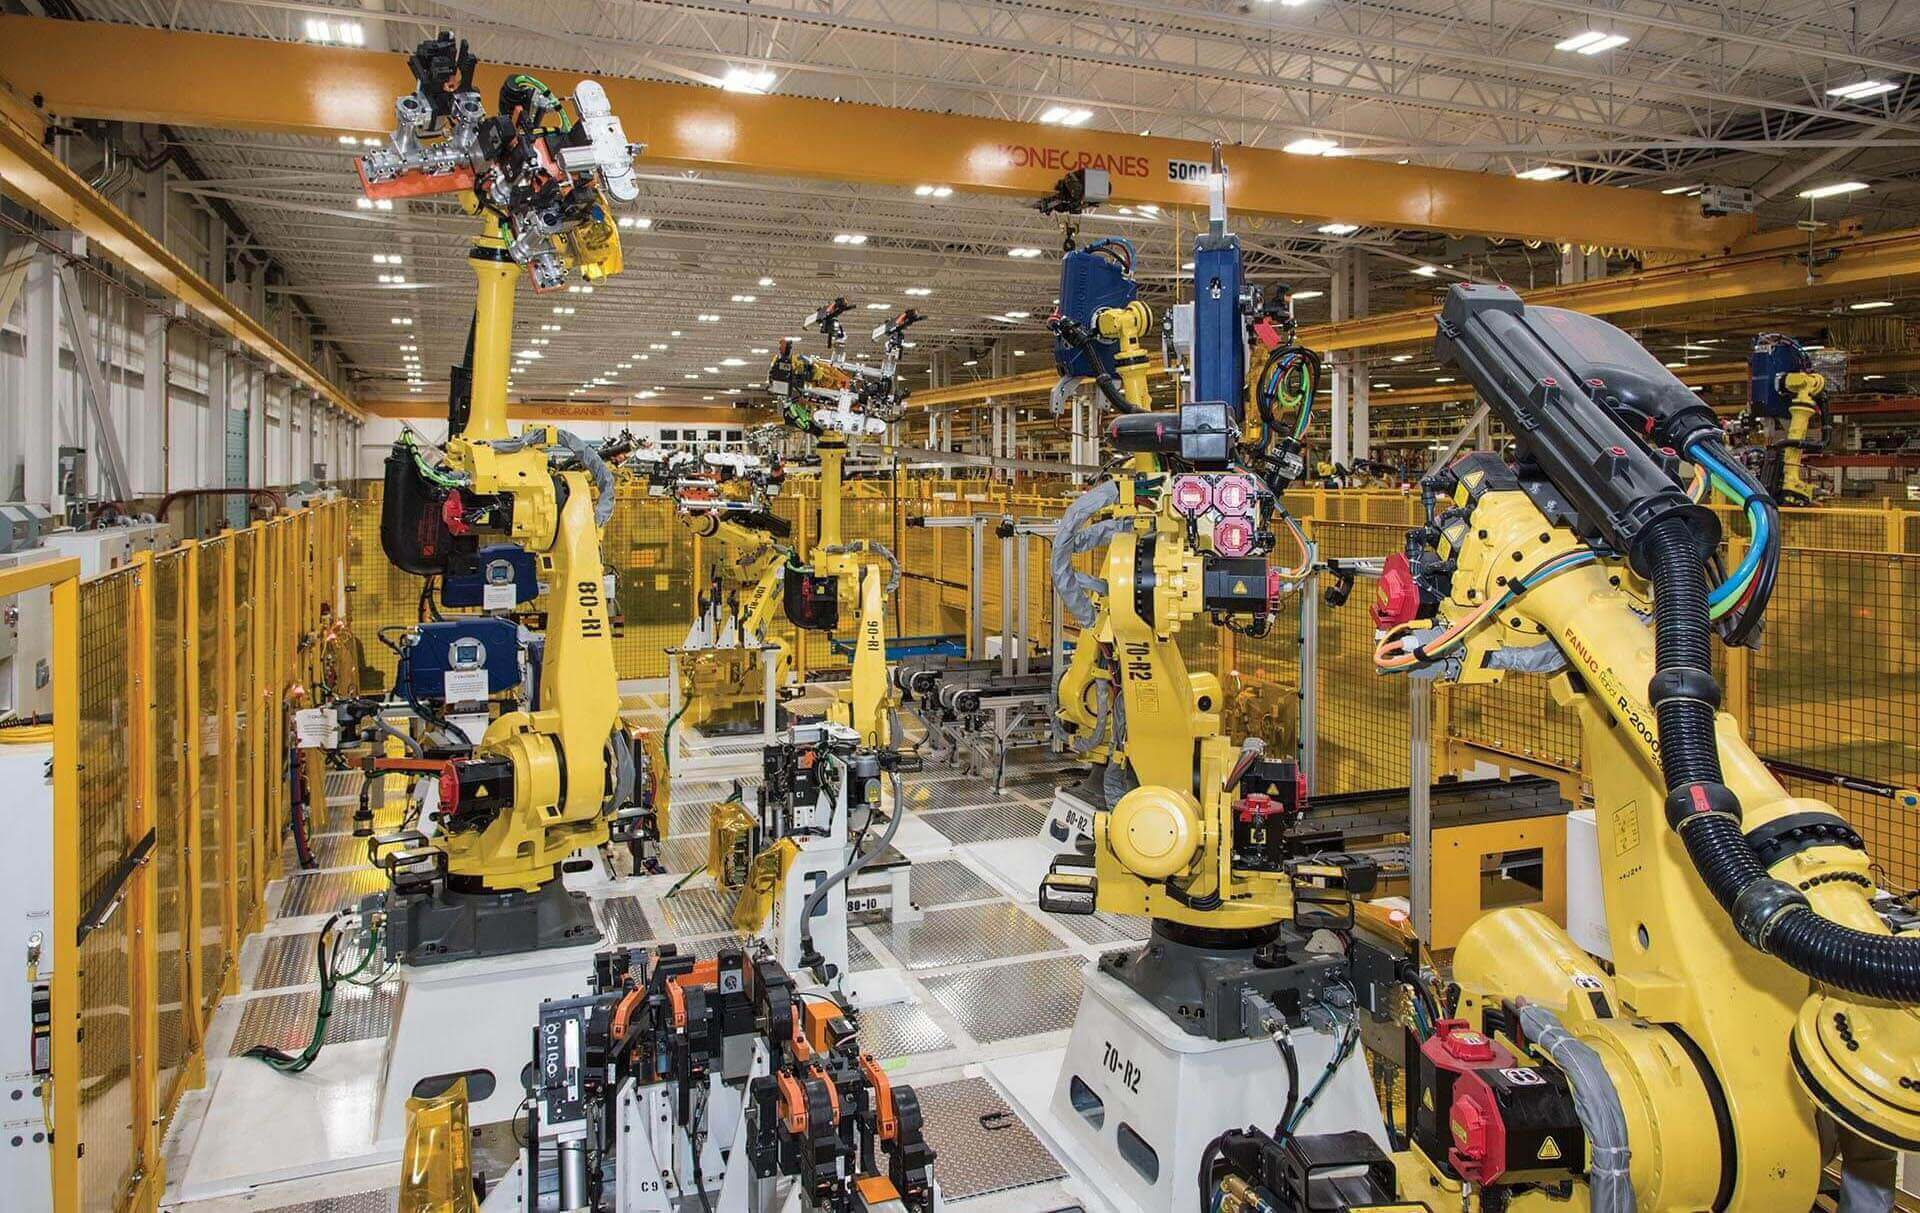 Image: CenterLine (Windsor) Limited, a Canadian industrial automation process andtechnology company, uses the virtual twin of the assembly lines it builds for itscustomers to verify robot movements and optimize its use of shop floor space, materialflow and ergonomic safety. (Image © CenterLine (Windsor) Limited)